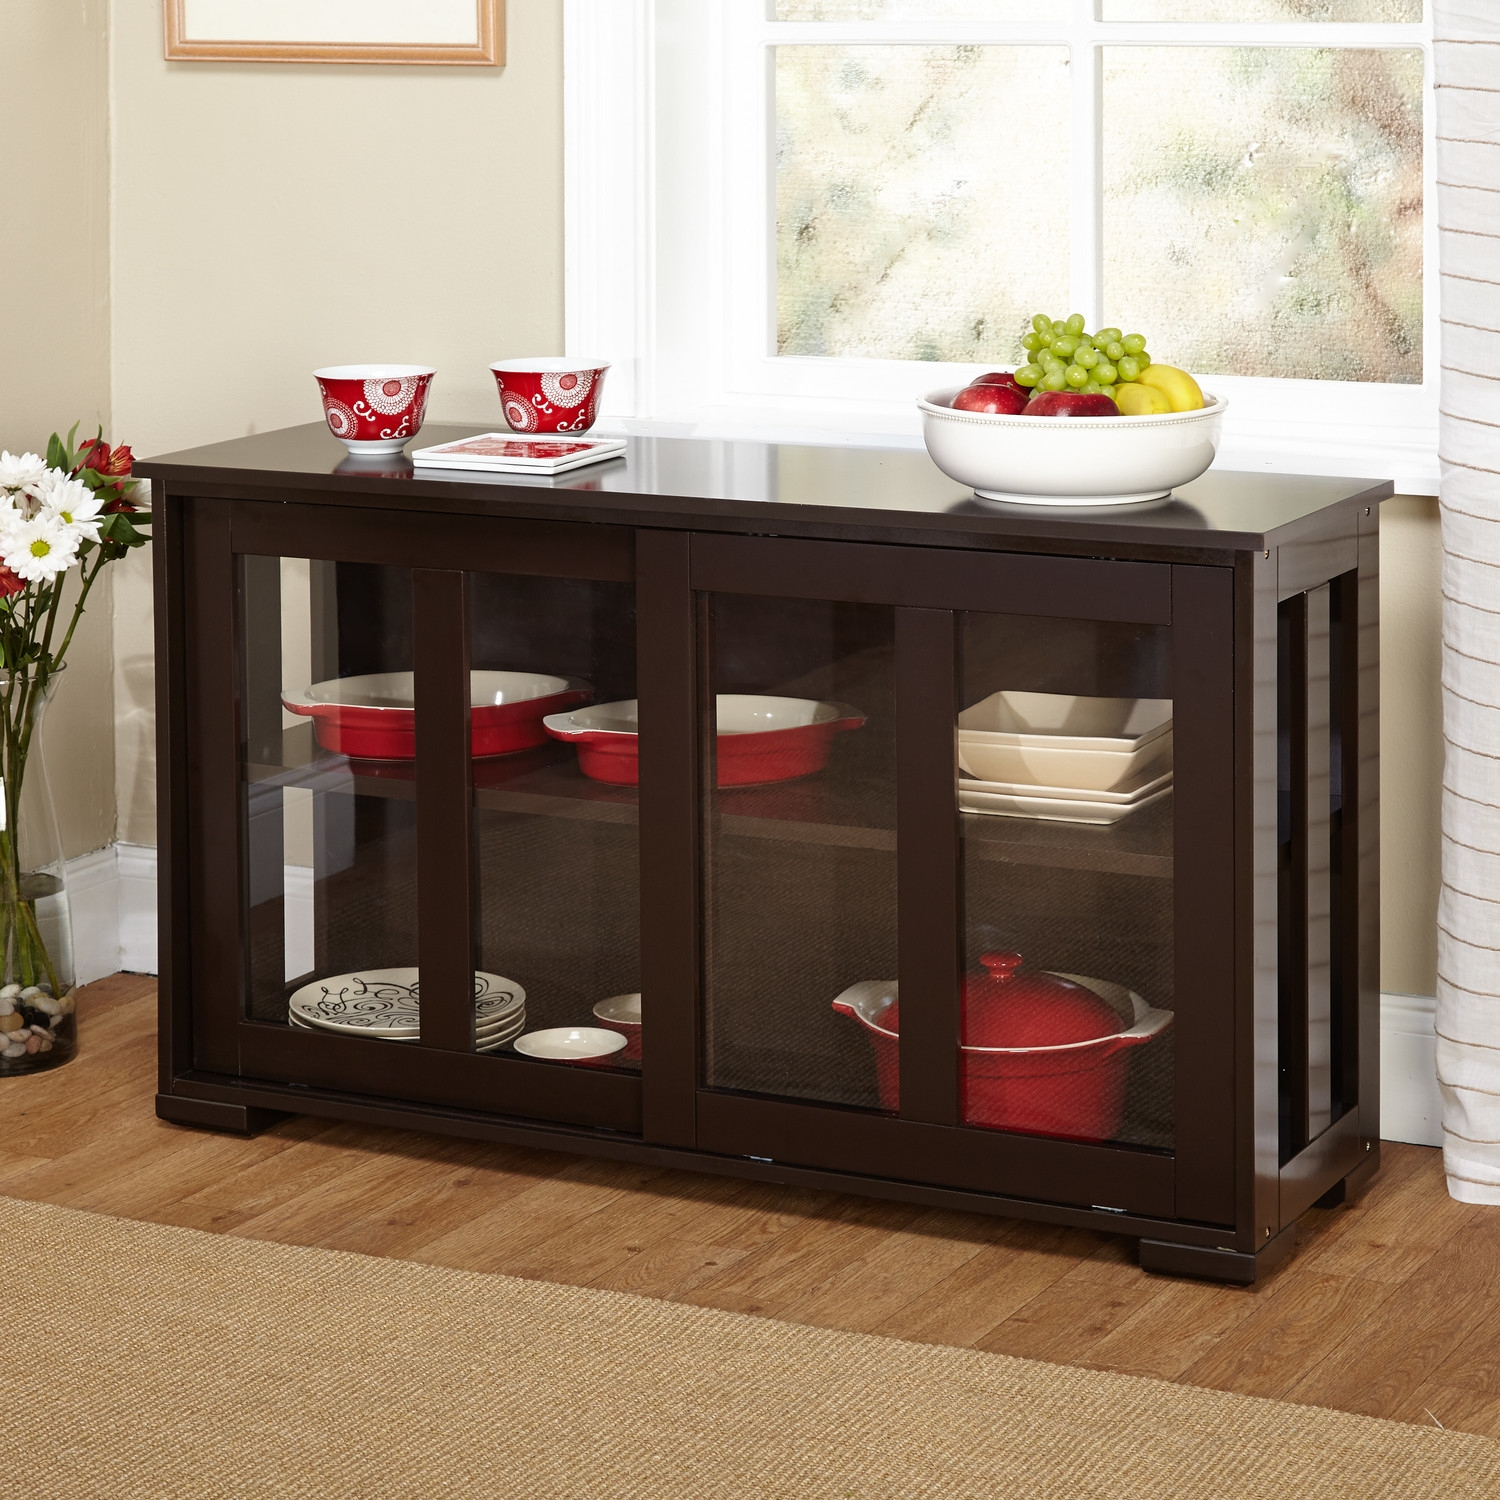 Dining Room Hutch Furniture Img 3 Espresso Dining Room Cabinet Storage Table Sliding Door